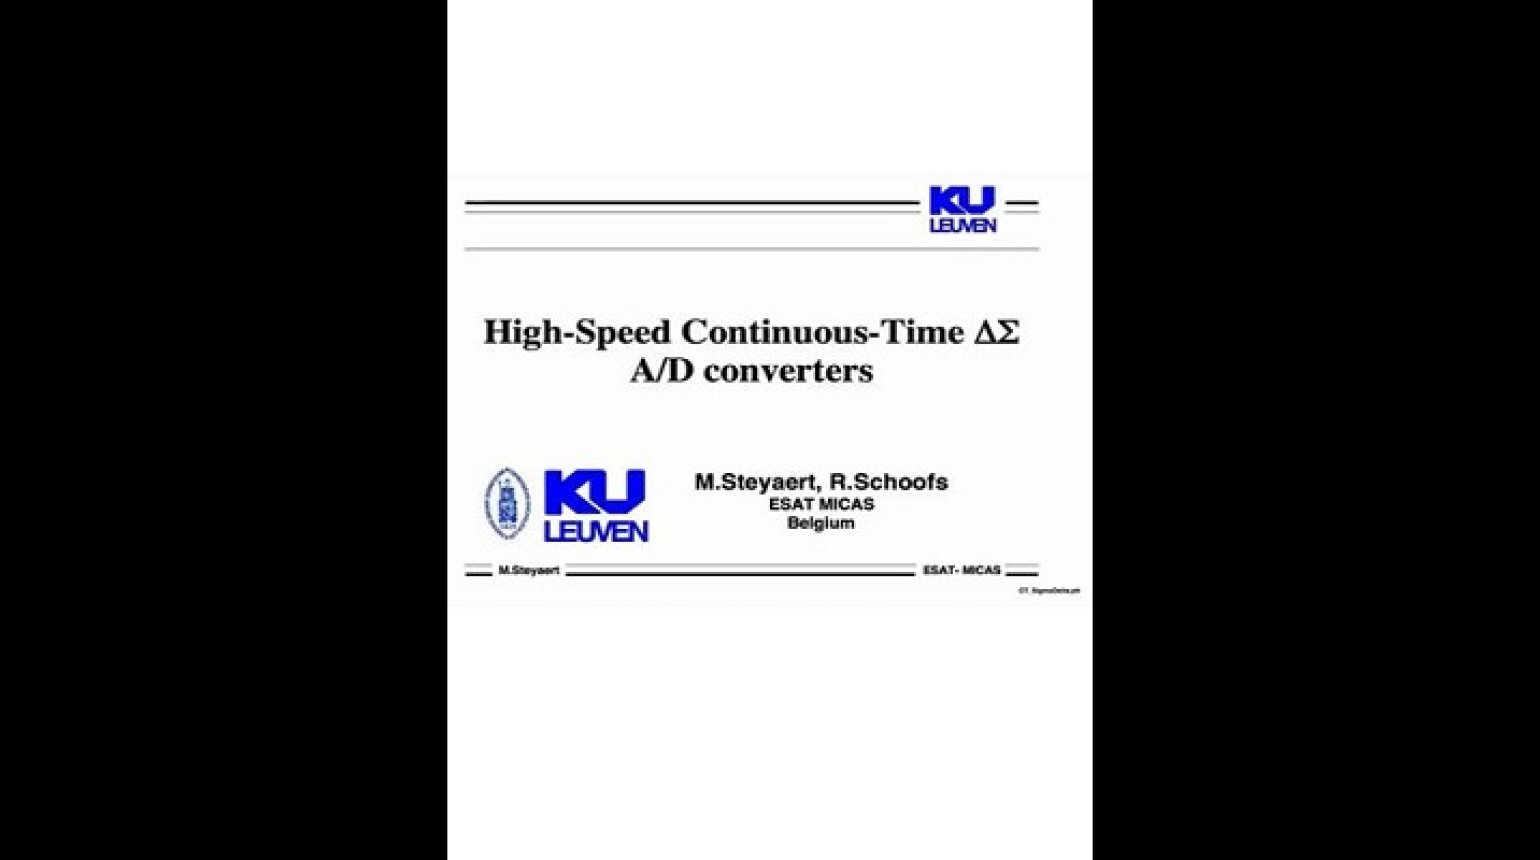 High-Speed Continuous-Time Delta Sigma A/D Converters Video